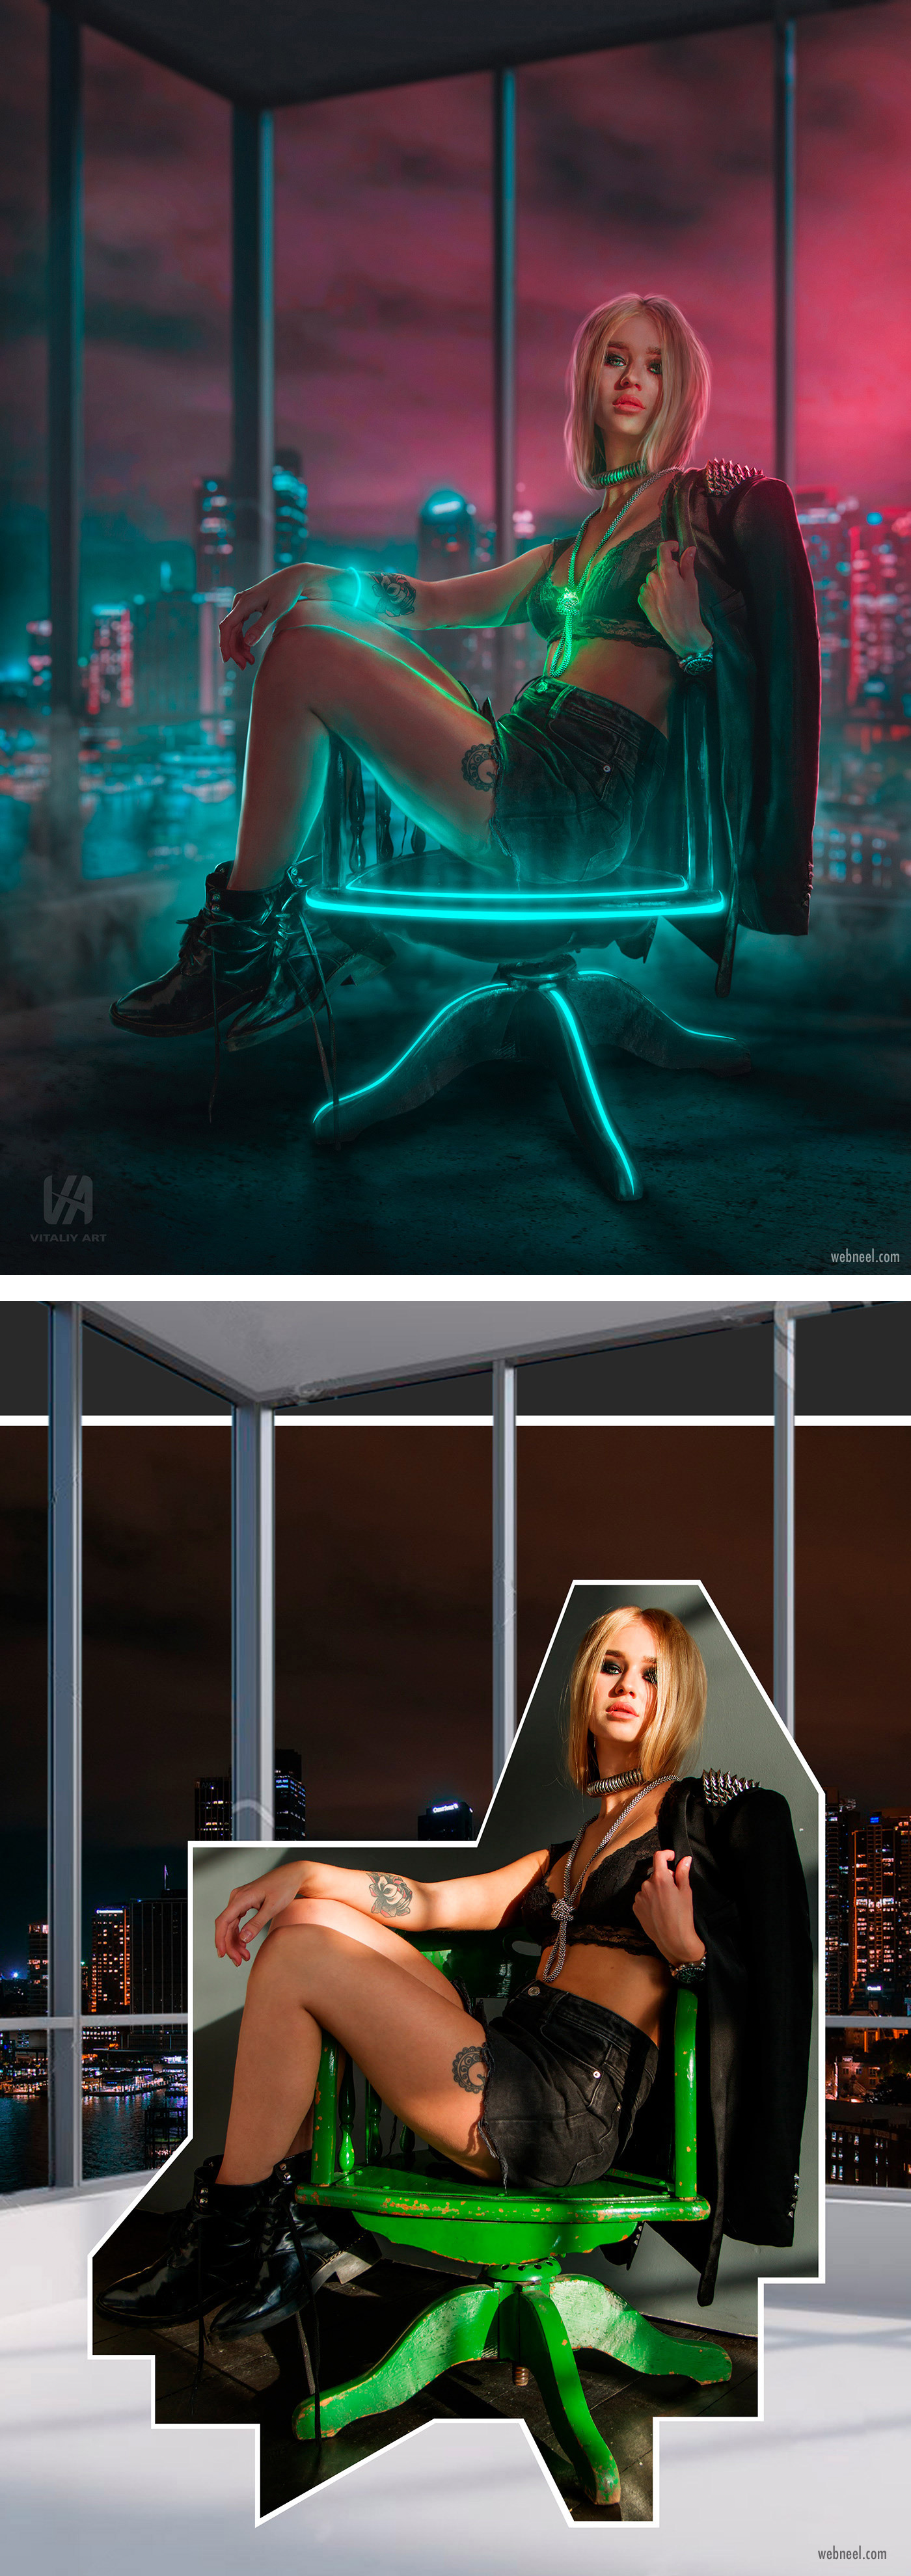 photo retouching after before futuristic neon sci fi girl city